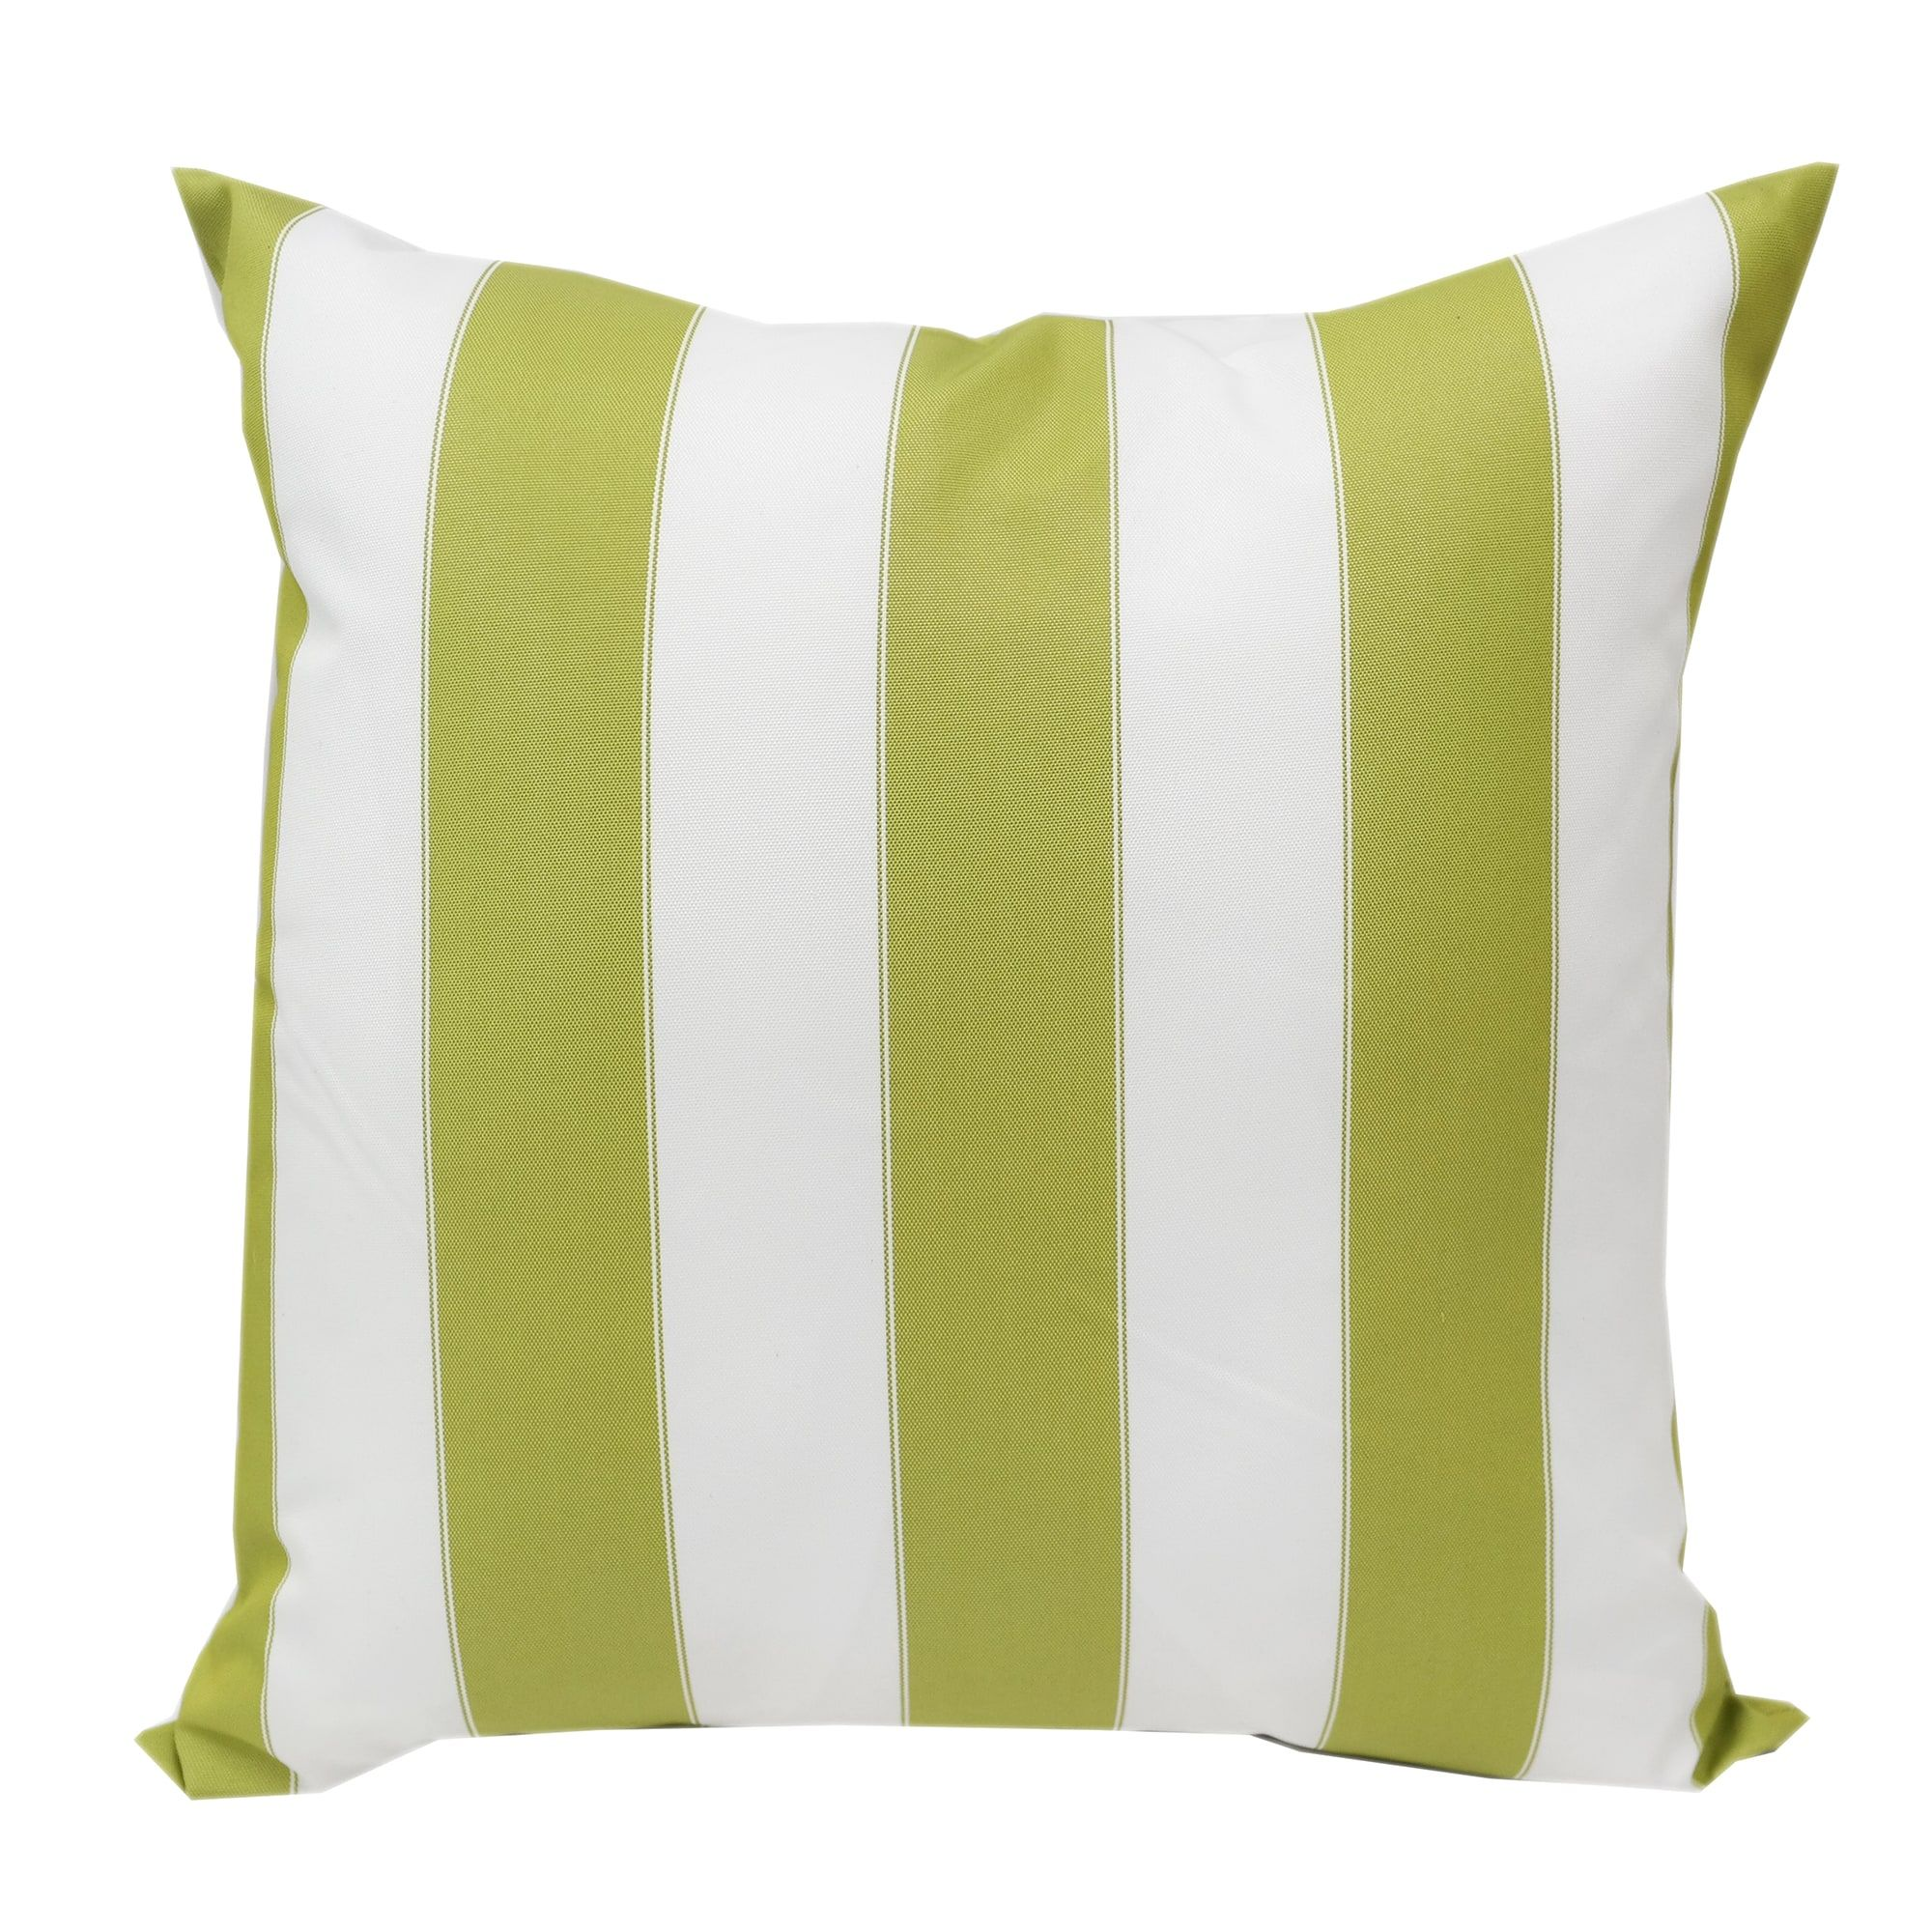 Blue And White Striped Outdoor Throw Pillow From Home Accent Pillows